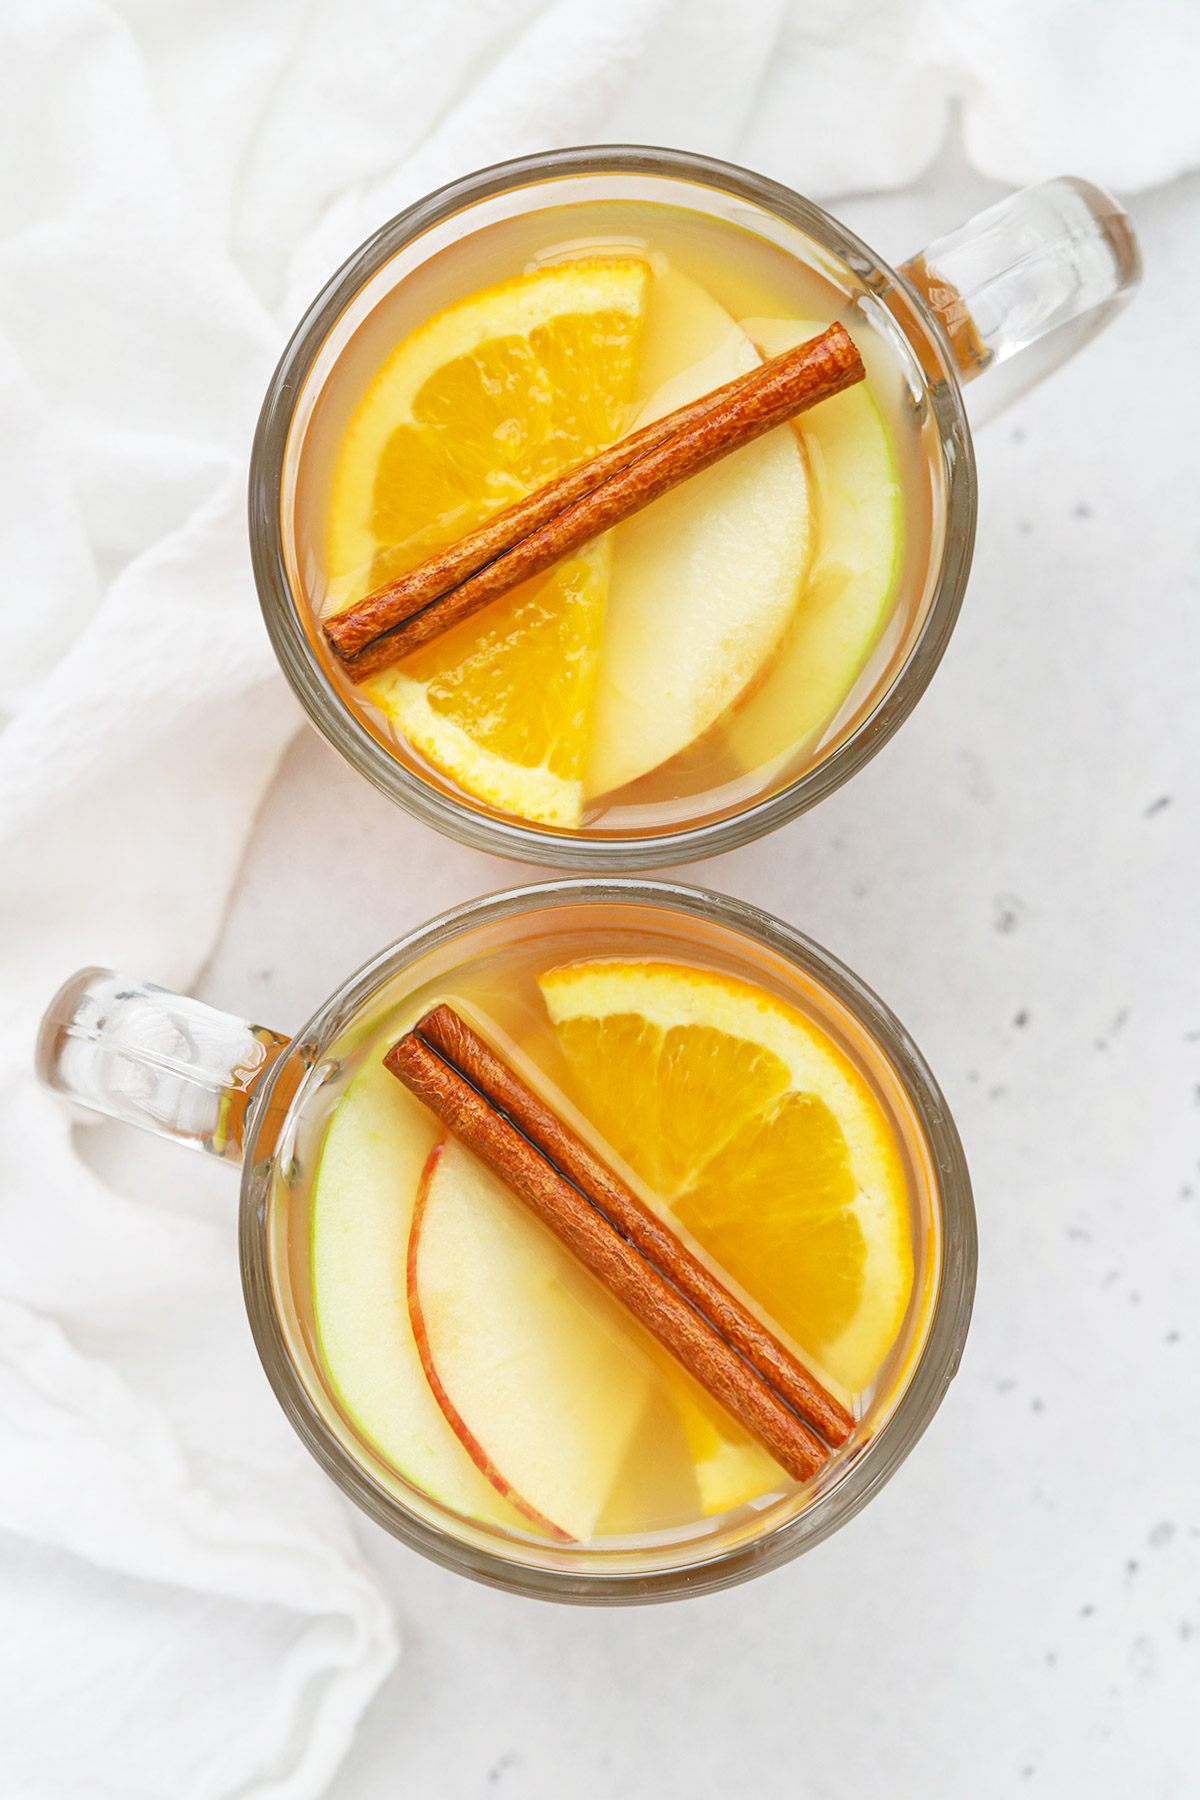 Overhead view of a glass mug of hot spiced cider garnished with apple slices, orange slices, and cinnamon sticks